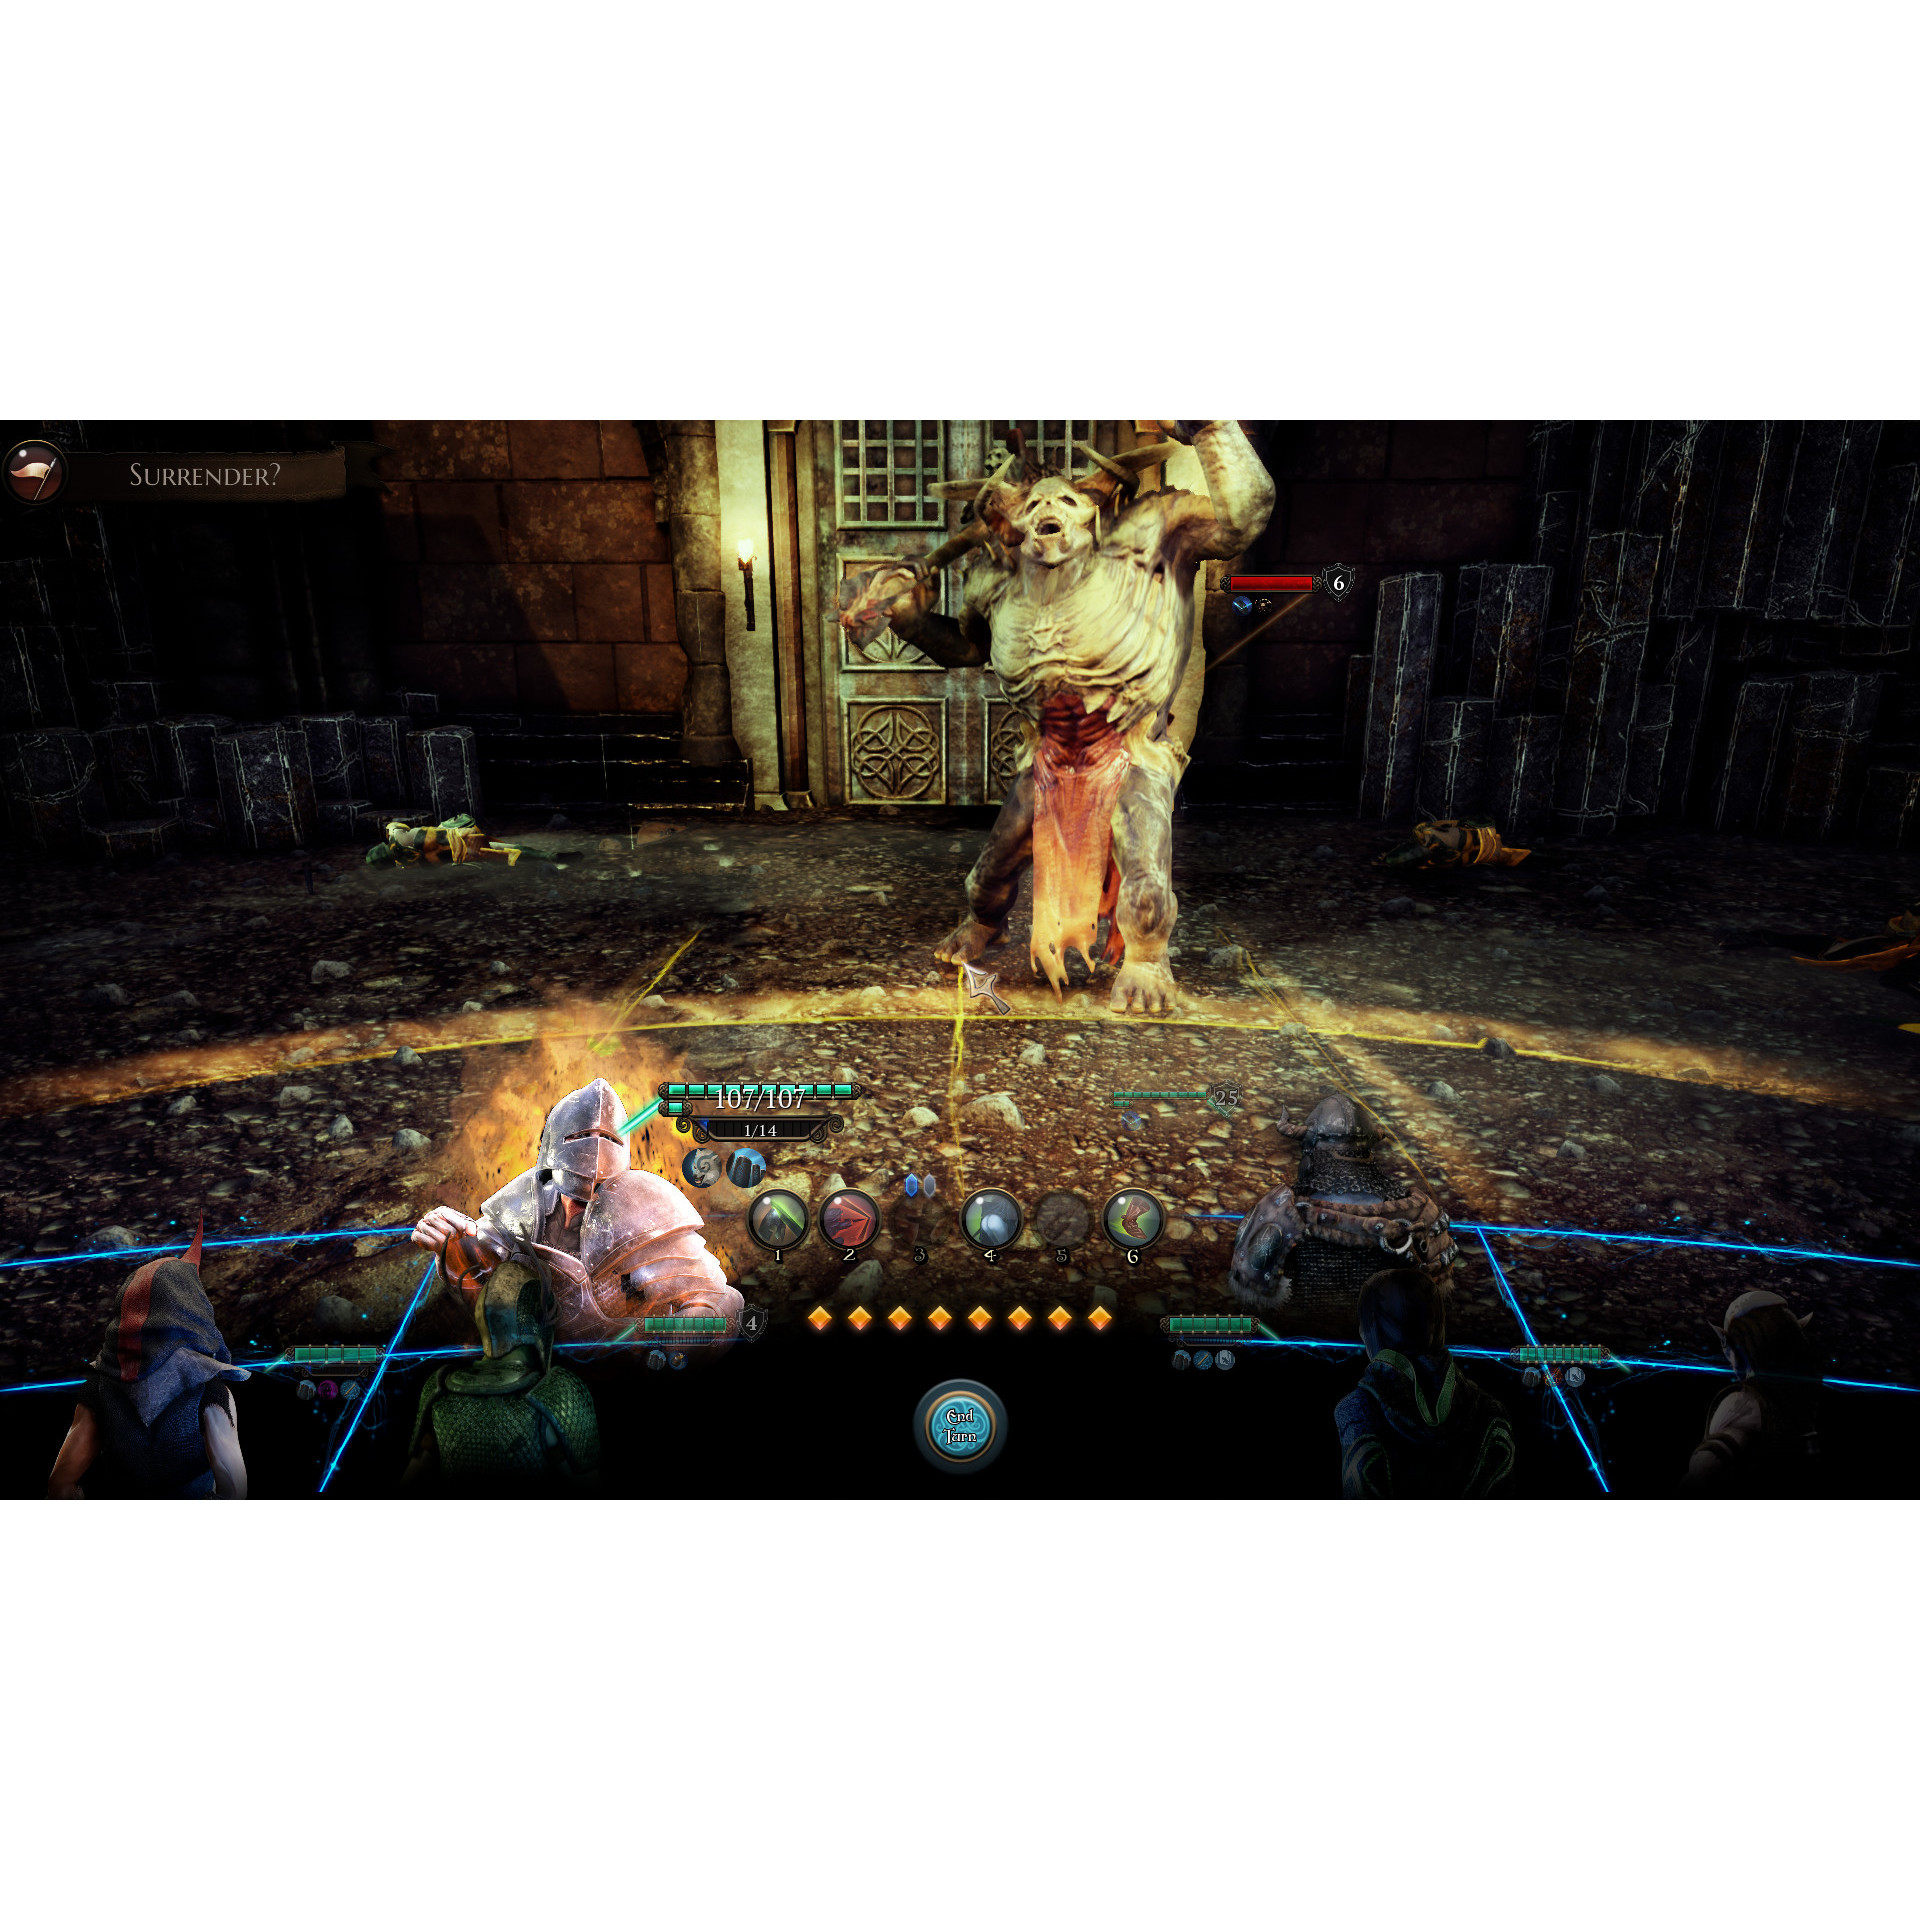 Joc The Bard's Tale IV: Directors Cut Day One Edition (EU) Pentru PlayStation 4 3